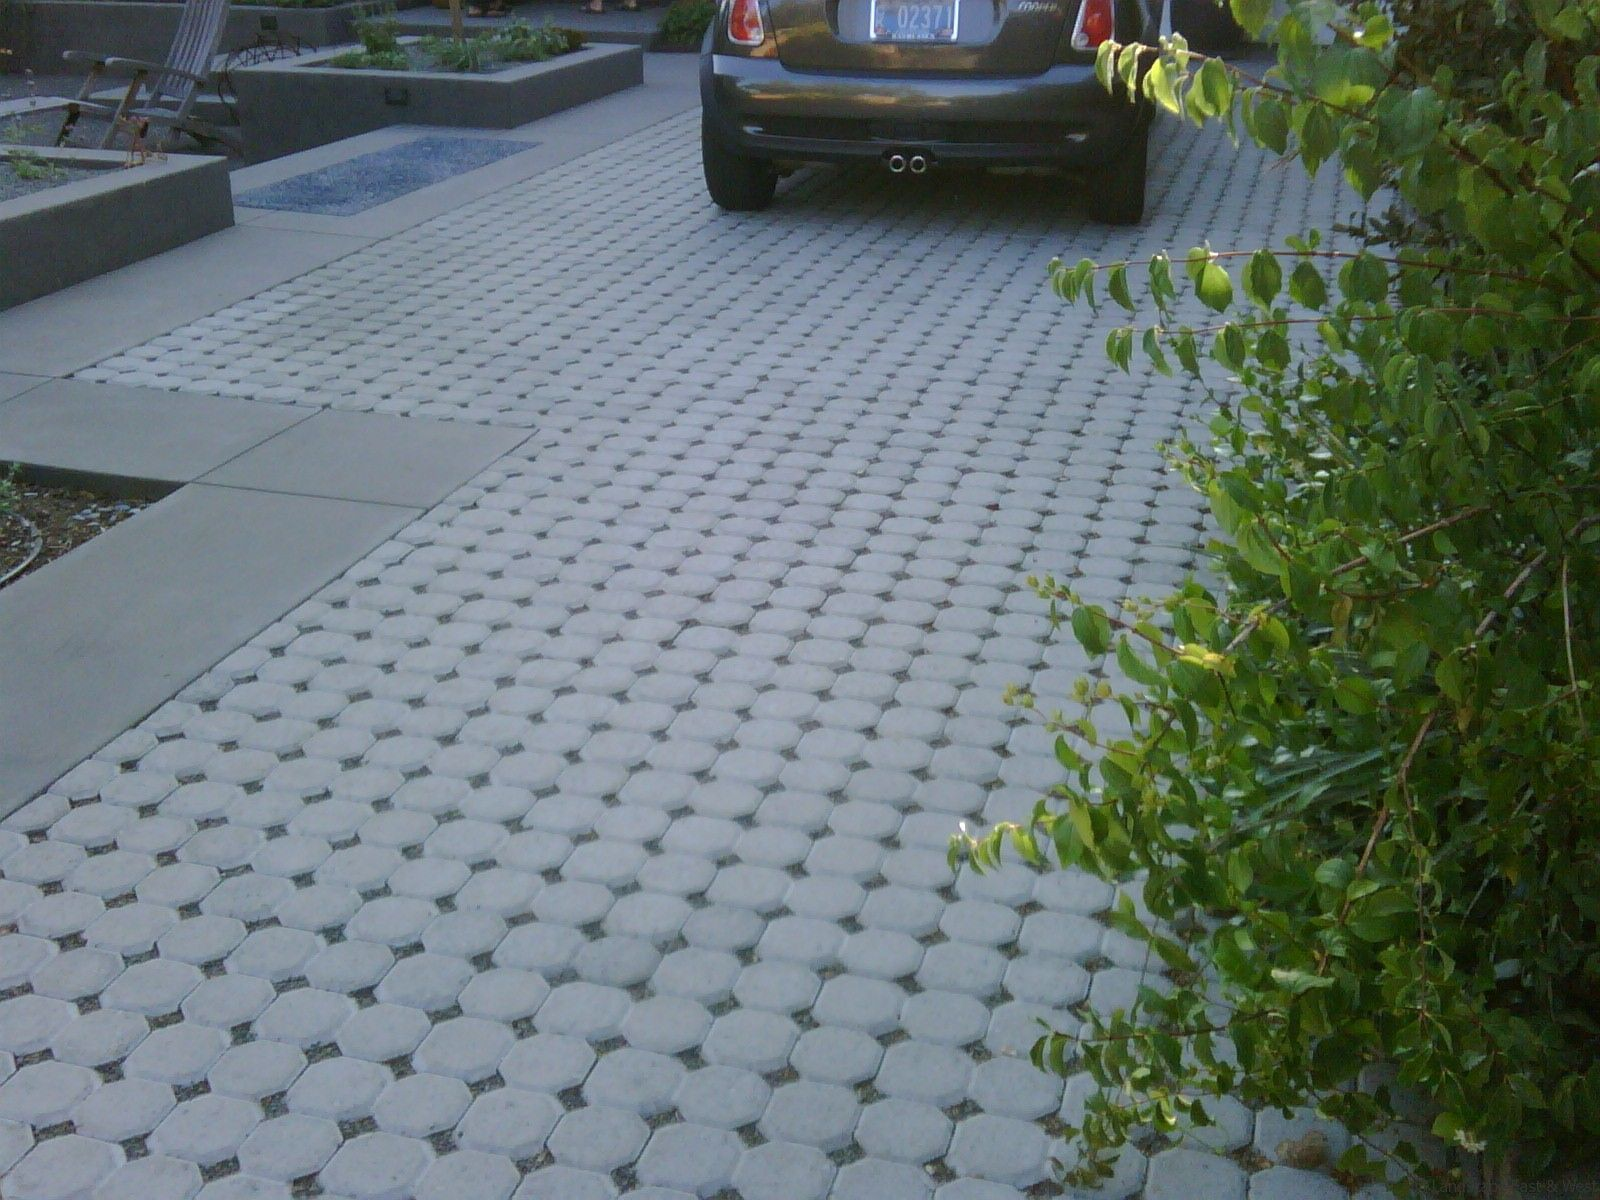 Paver pattern gravel concrete or pavers driveway for Paving garden designs